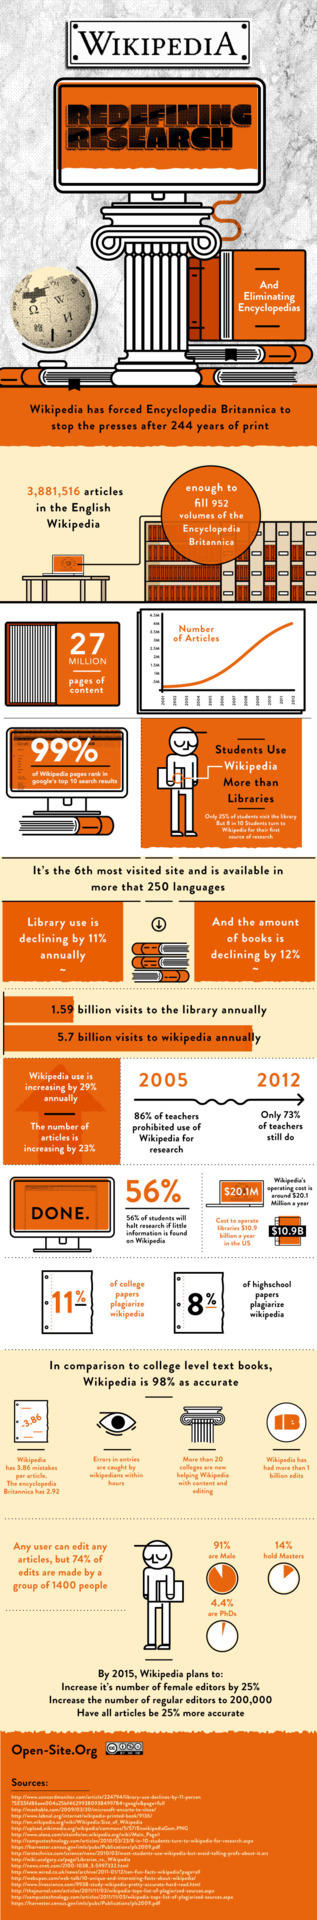 Wikipedia: Redefining Research [infographic]